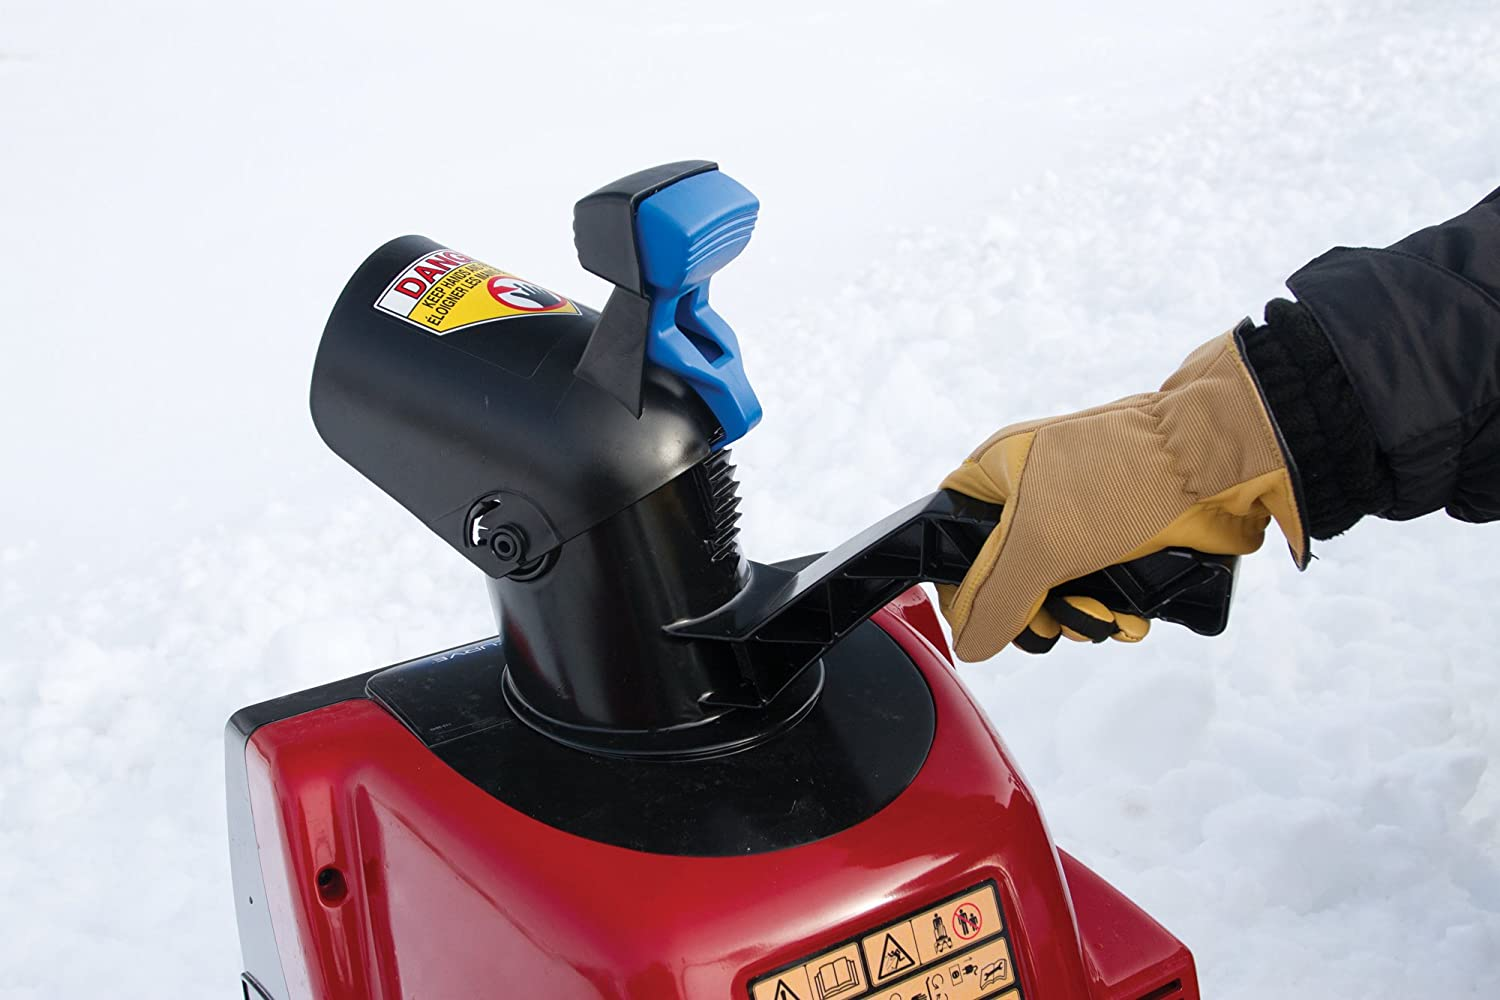 Toro electric snow blower can launch snow of up to twenty-five feet